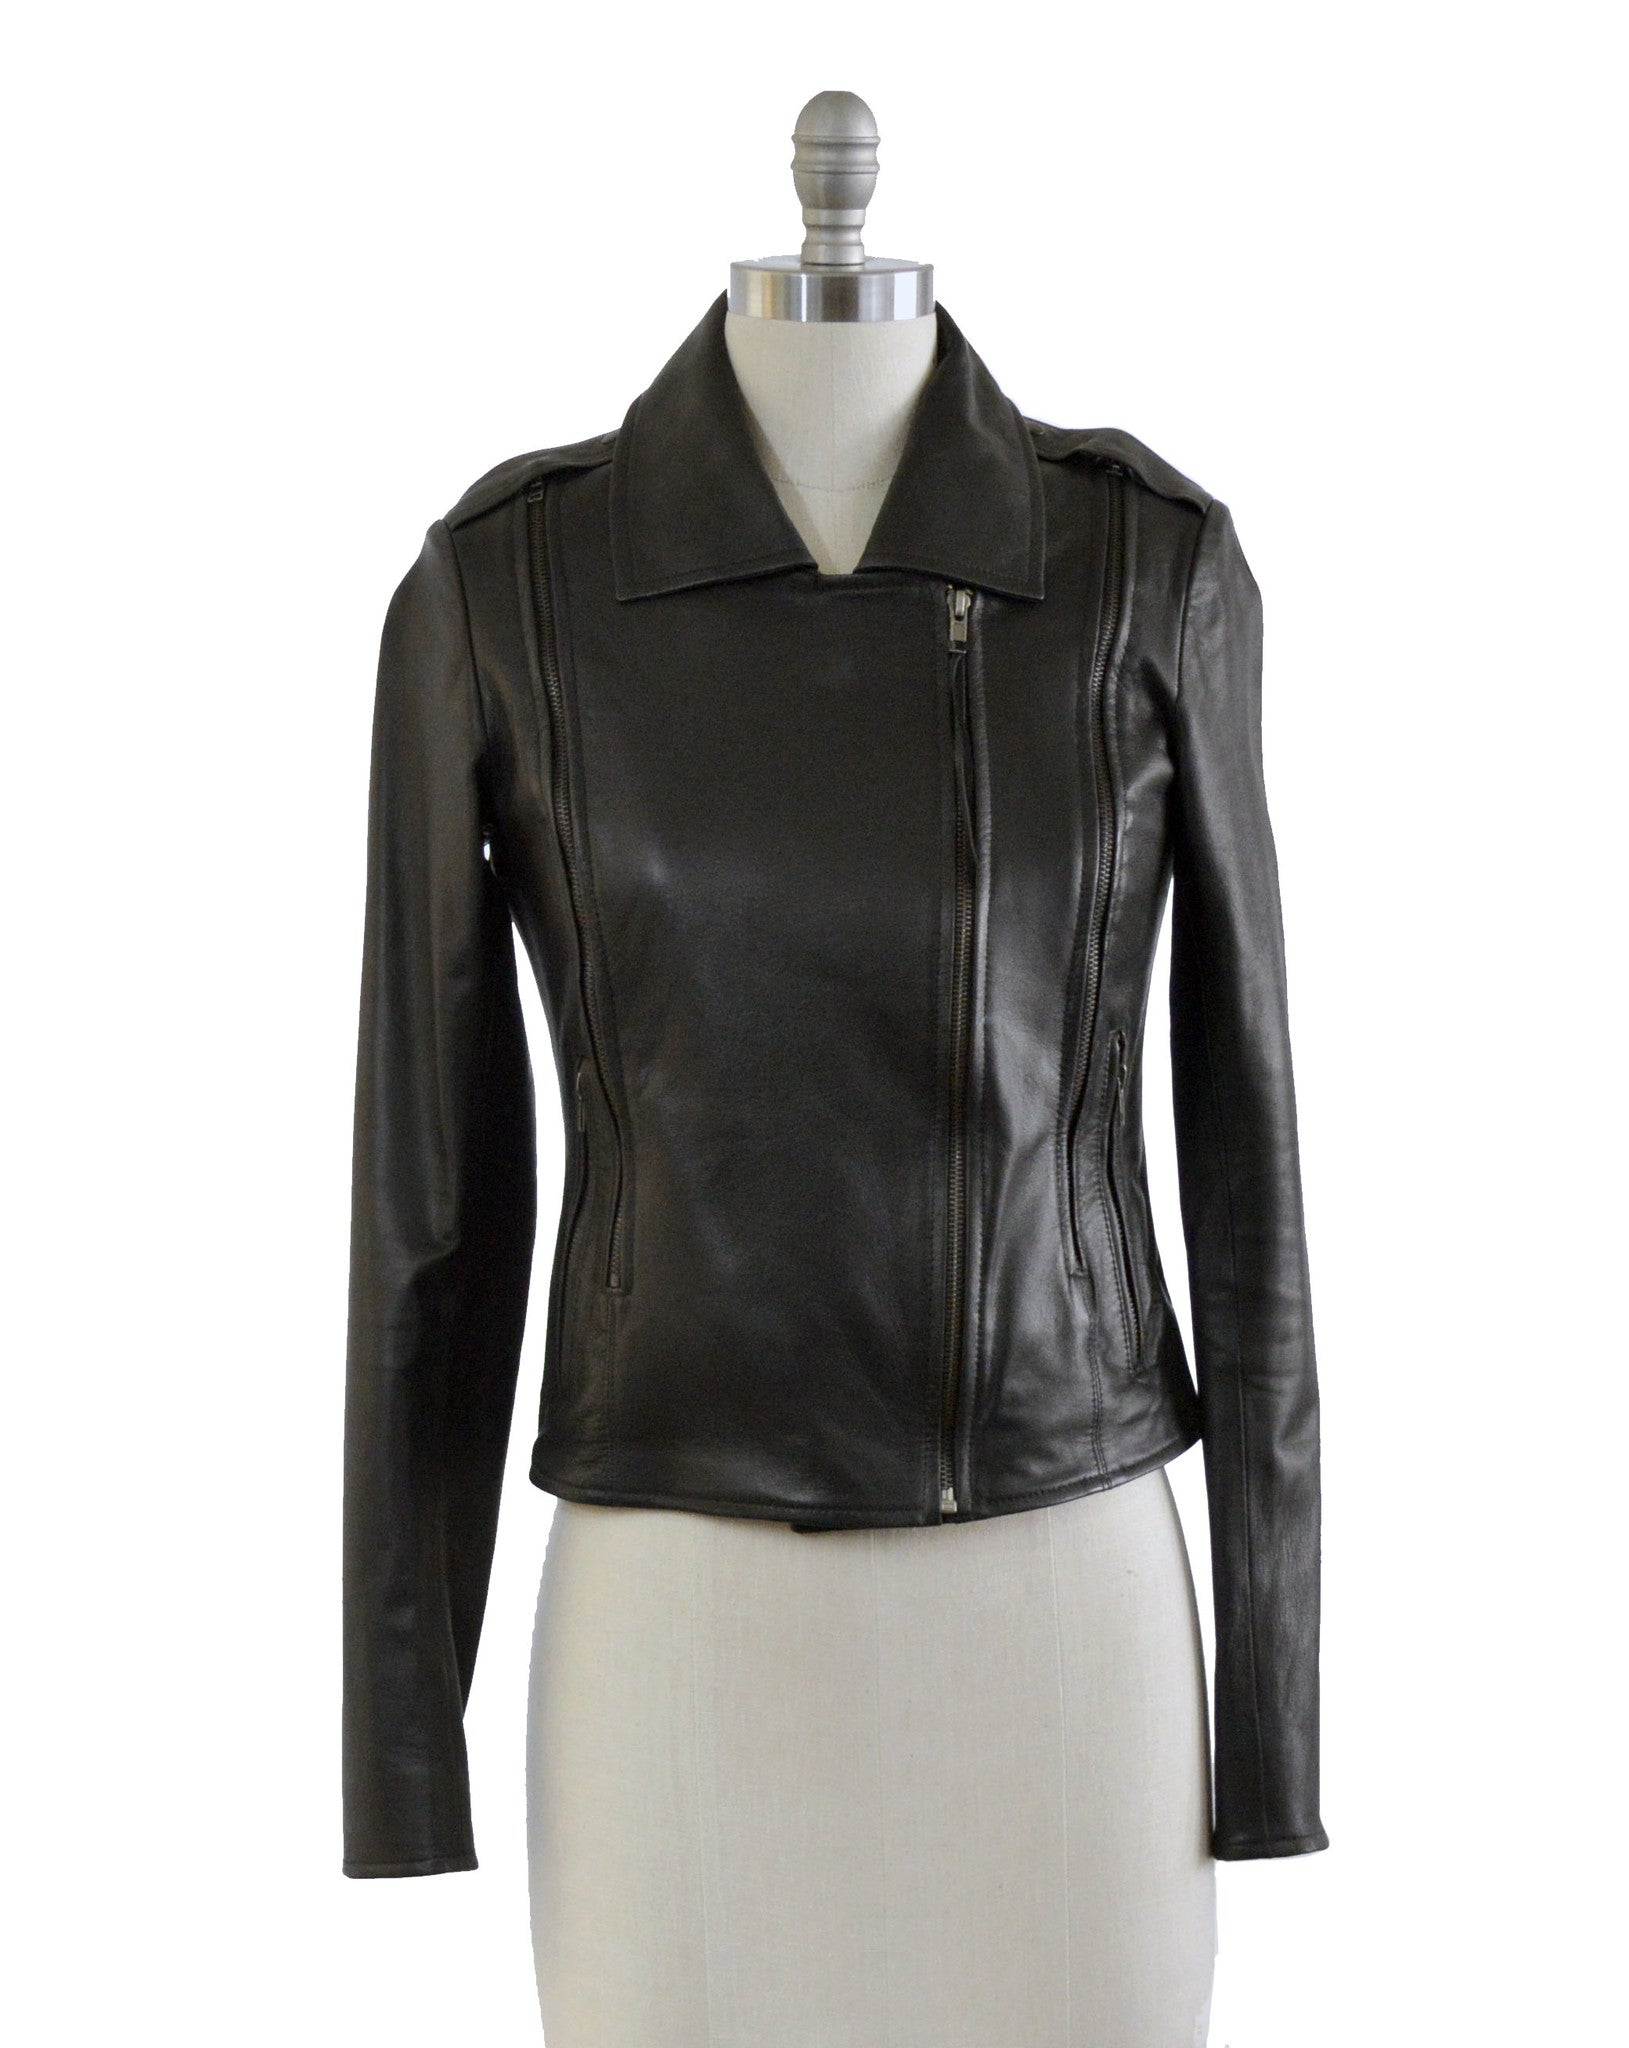 Tala Zipper Jacket